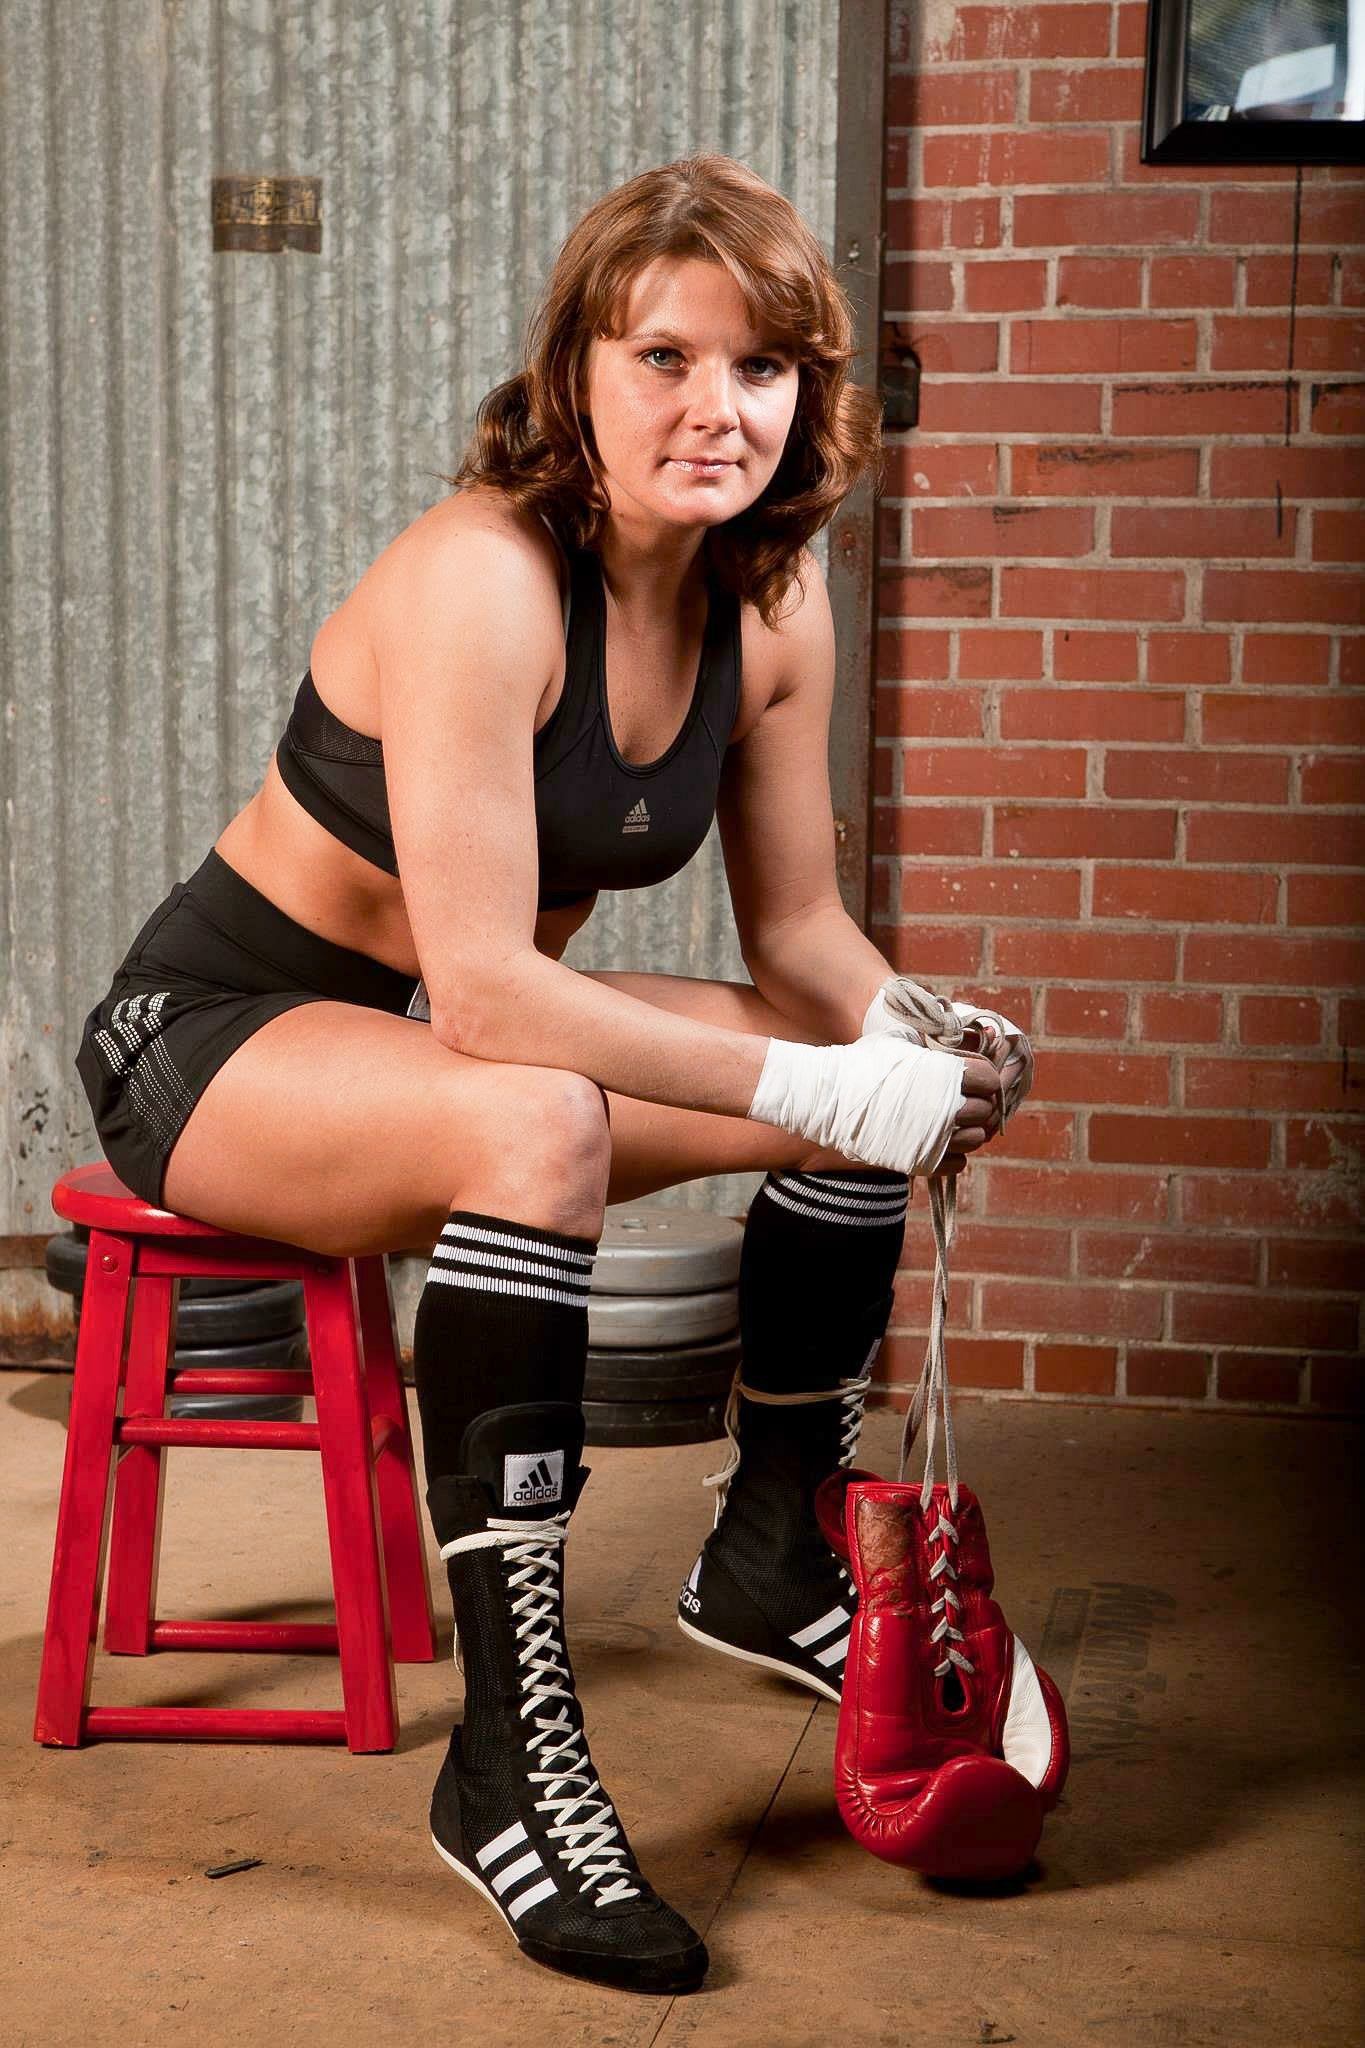 Lisa Garland is sitting on a stool in boxing gear, holding her boxing gloves in her hands. Boxing; adidas; training; workout; fight, goals; GamePlanA